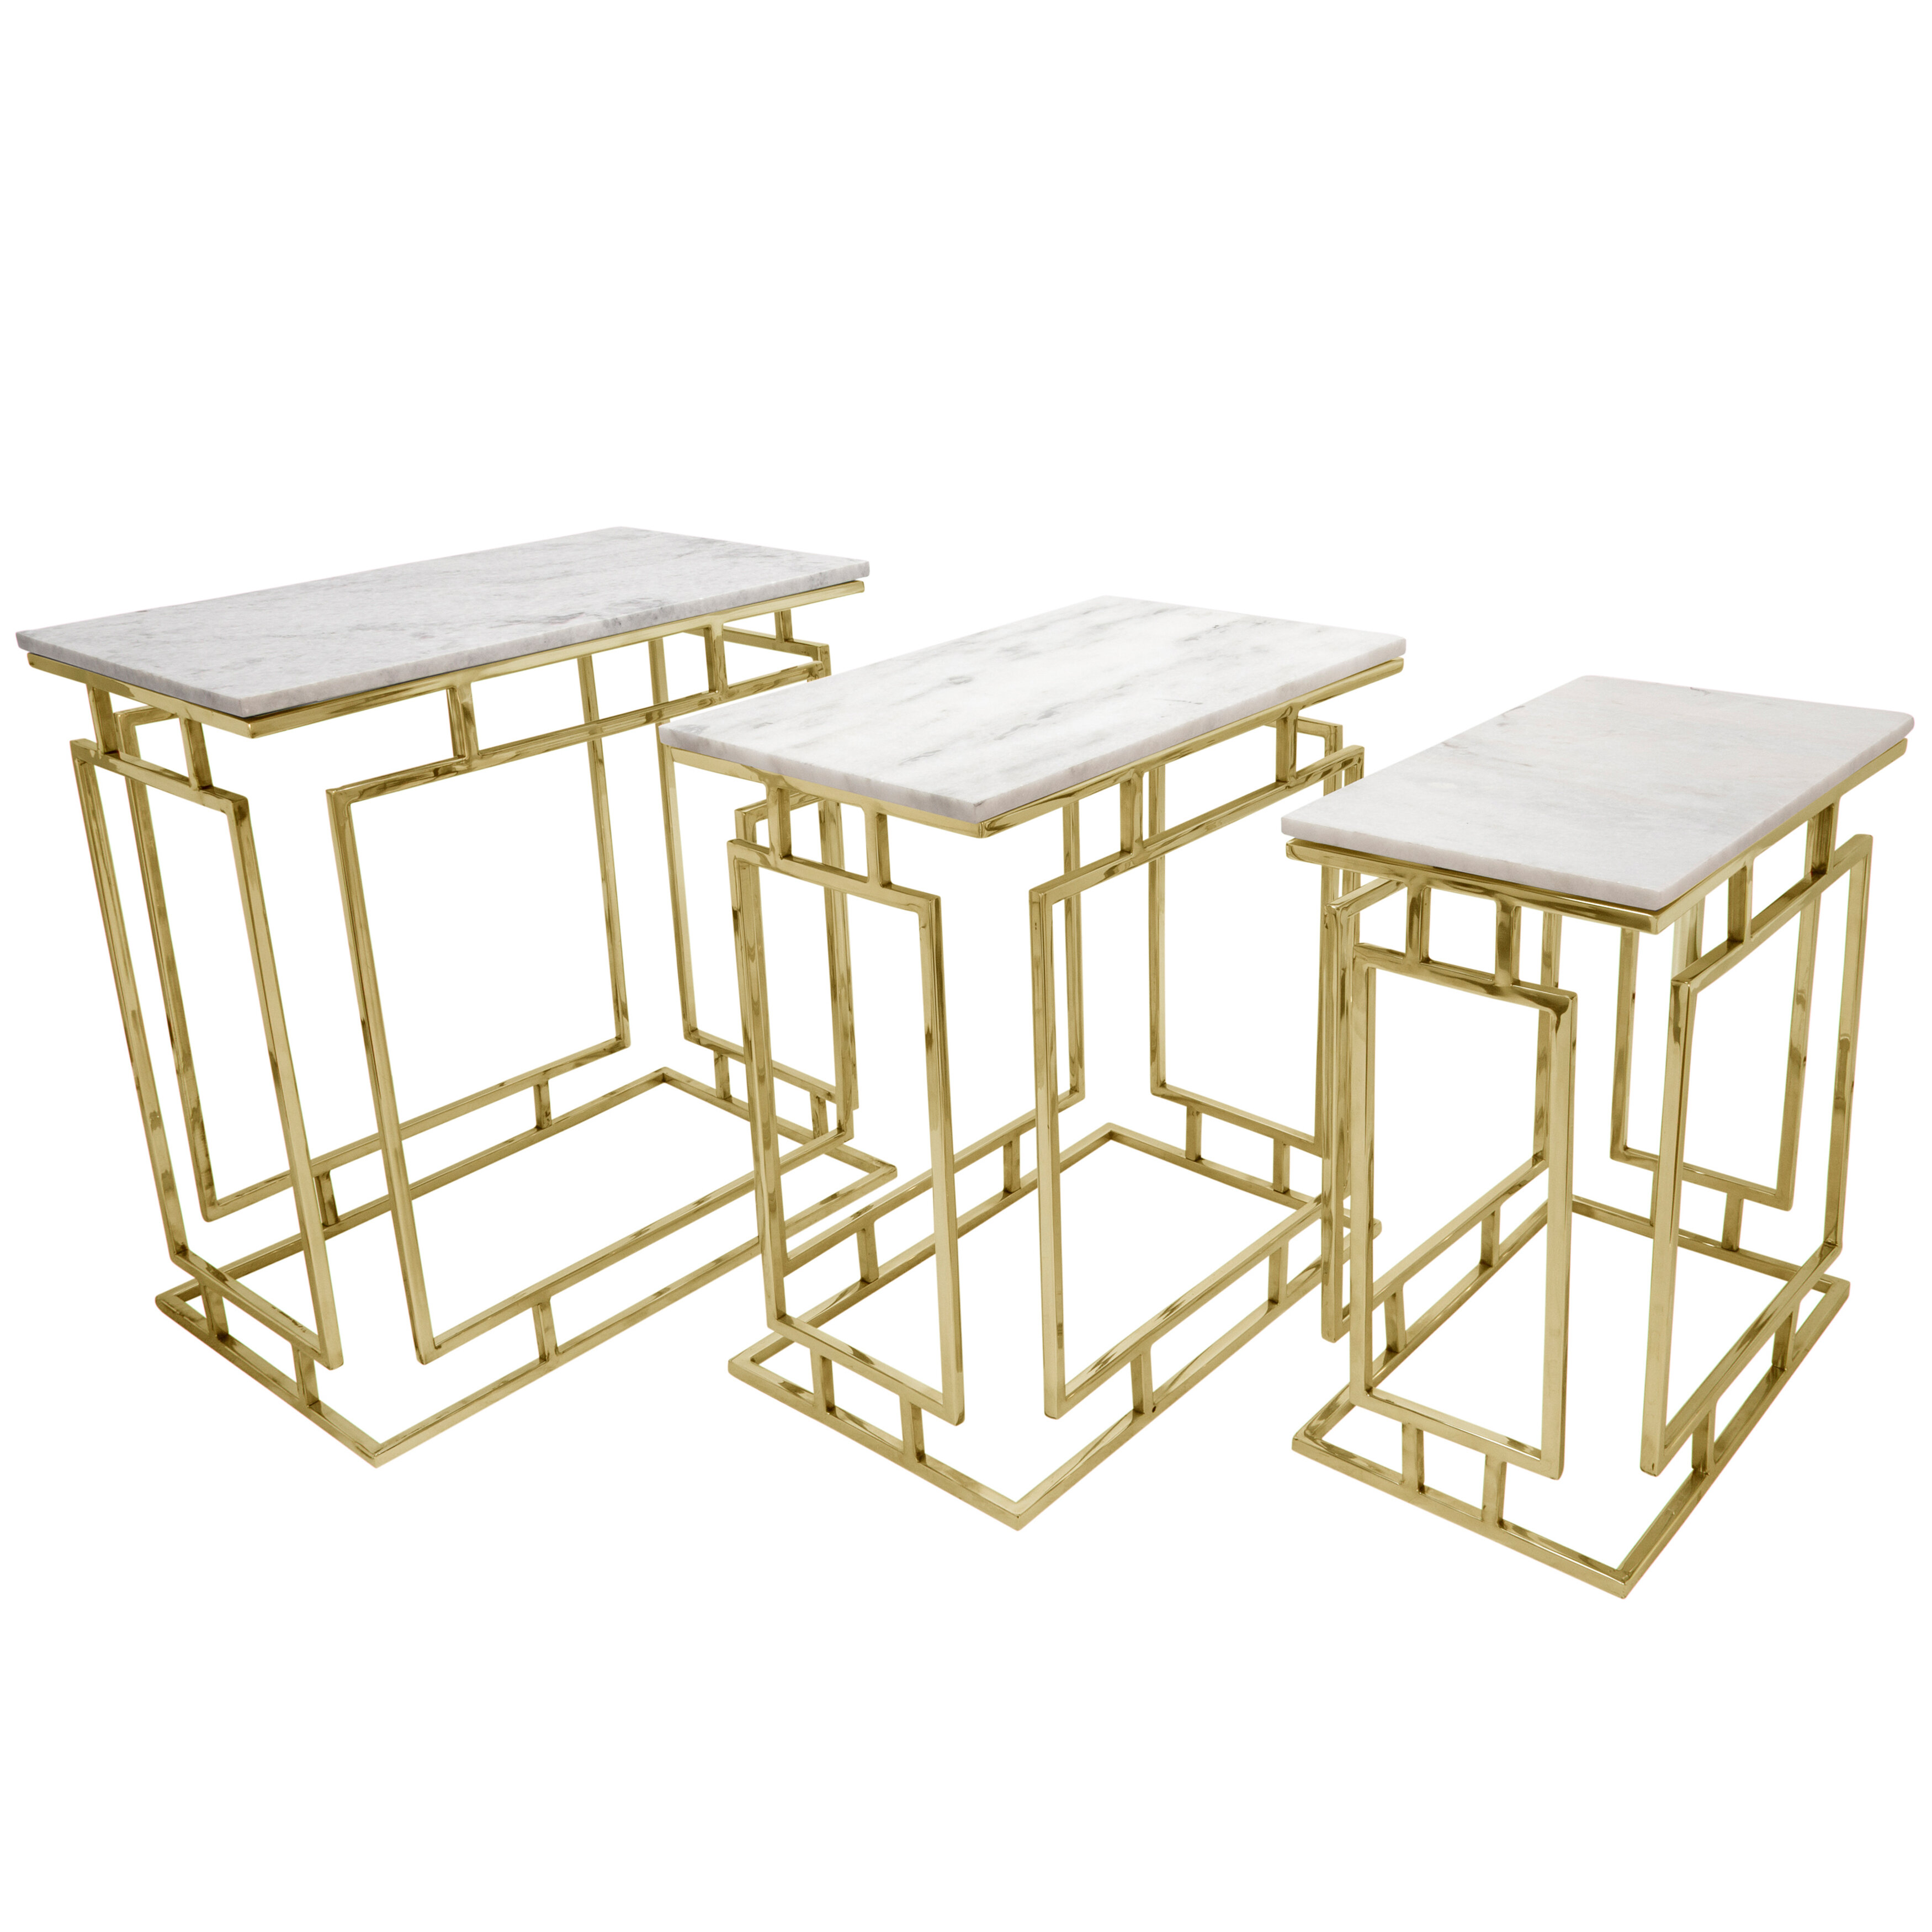 3 Gold End Side Tables You Ll Love In 2021 Wayfair